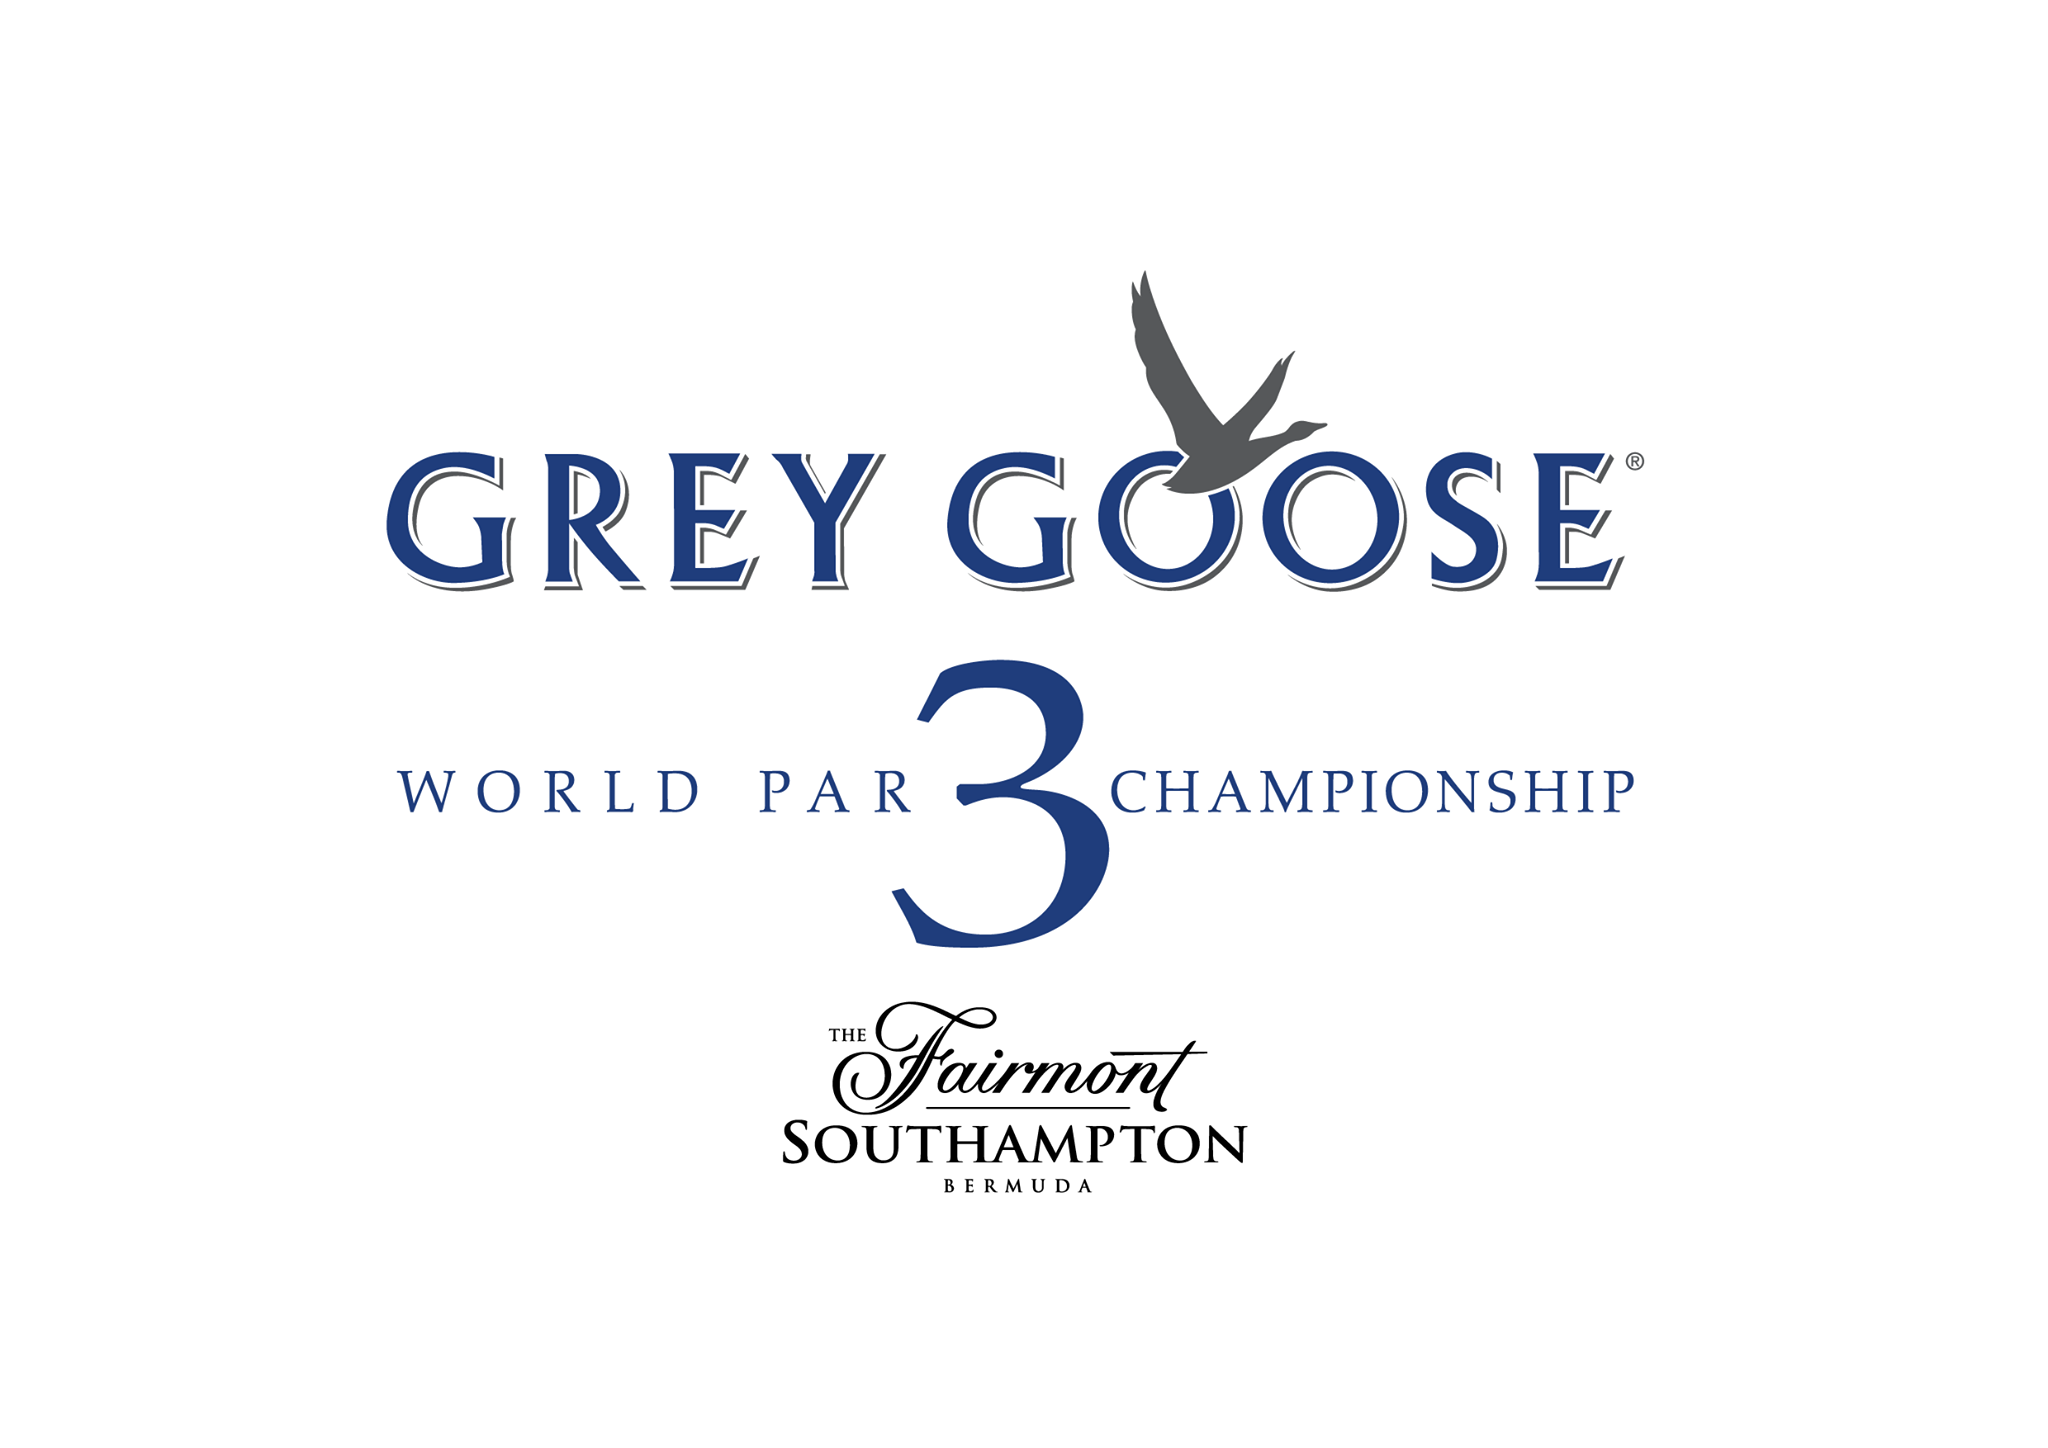 Cover of golf event named The Grey Goose World Par 3 Championship